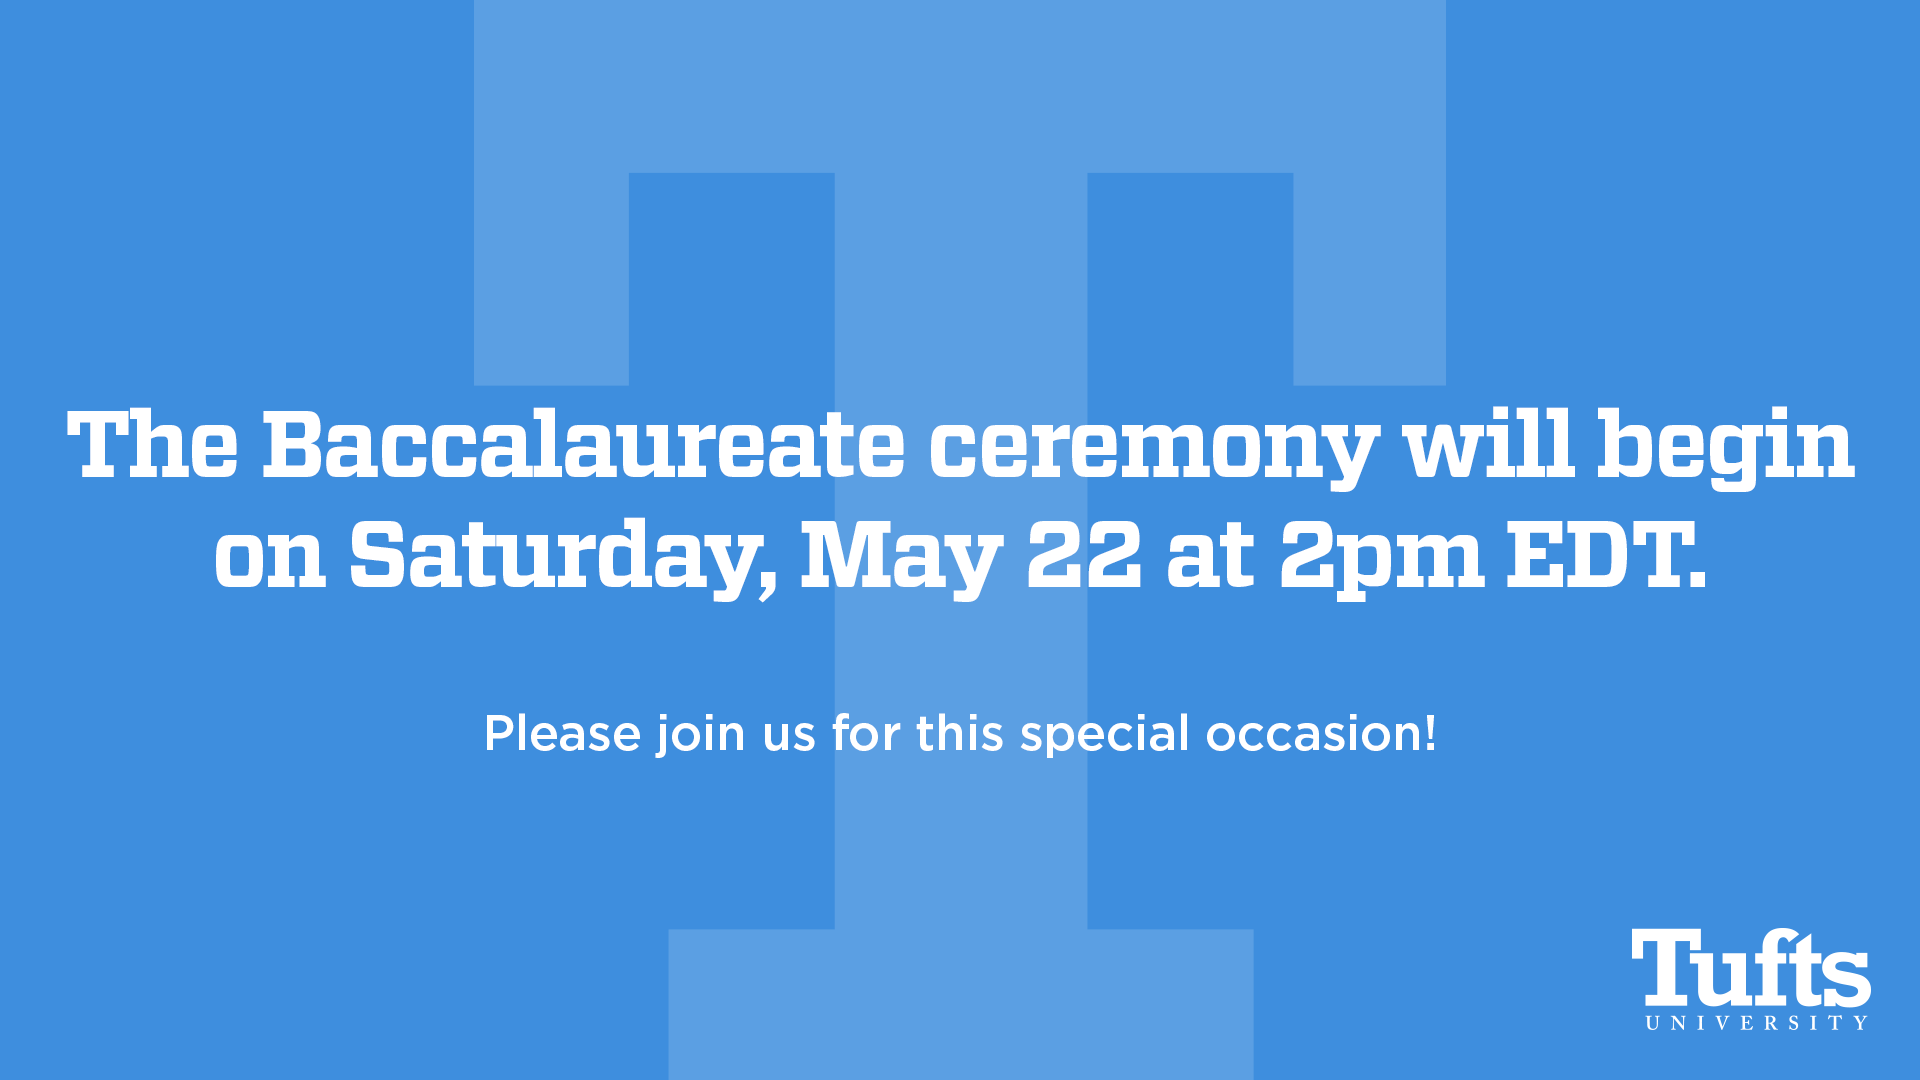 The Baccalaureate ceremony will begin on Saturday, May 22 at 2 p.m. EDT